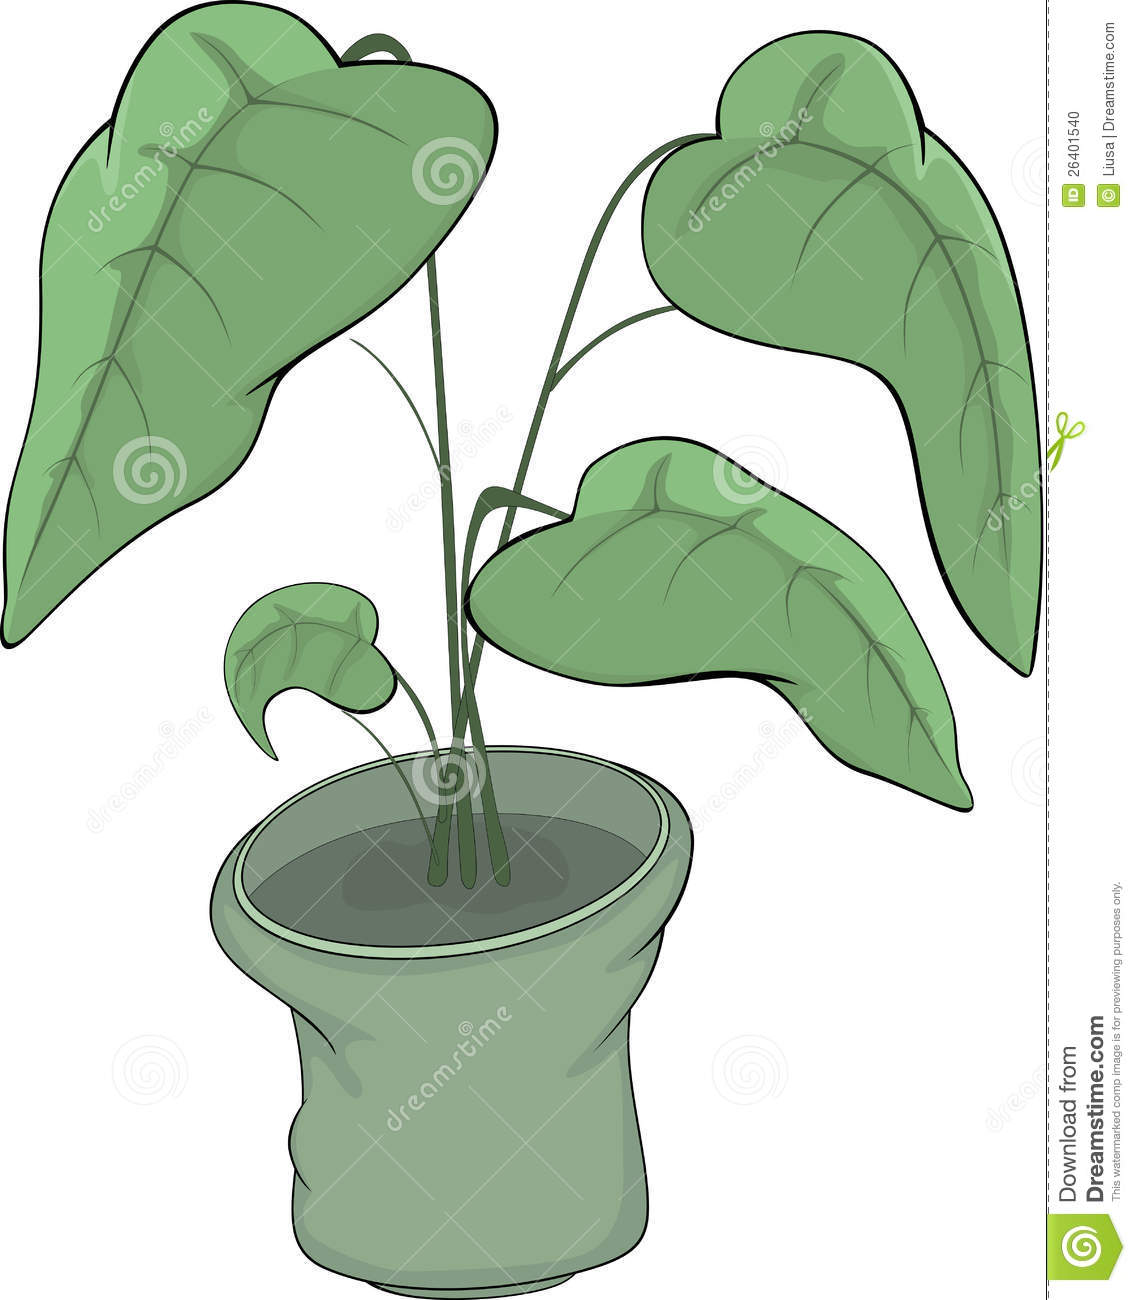 Rubber Plant In A Pot Stock Vector Illustration Of Garden 26401540